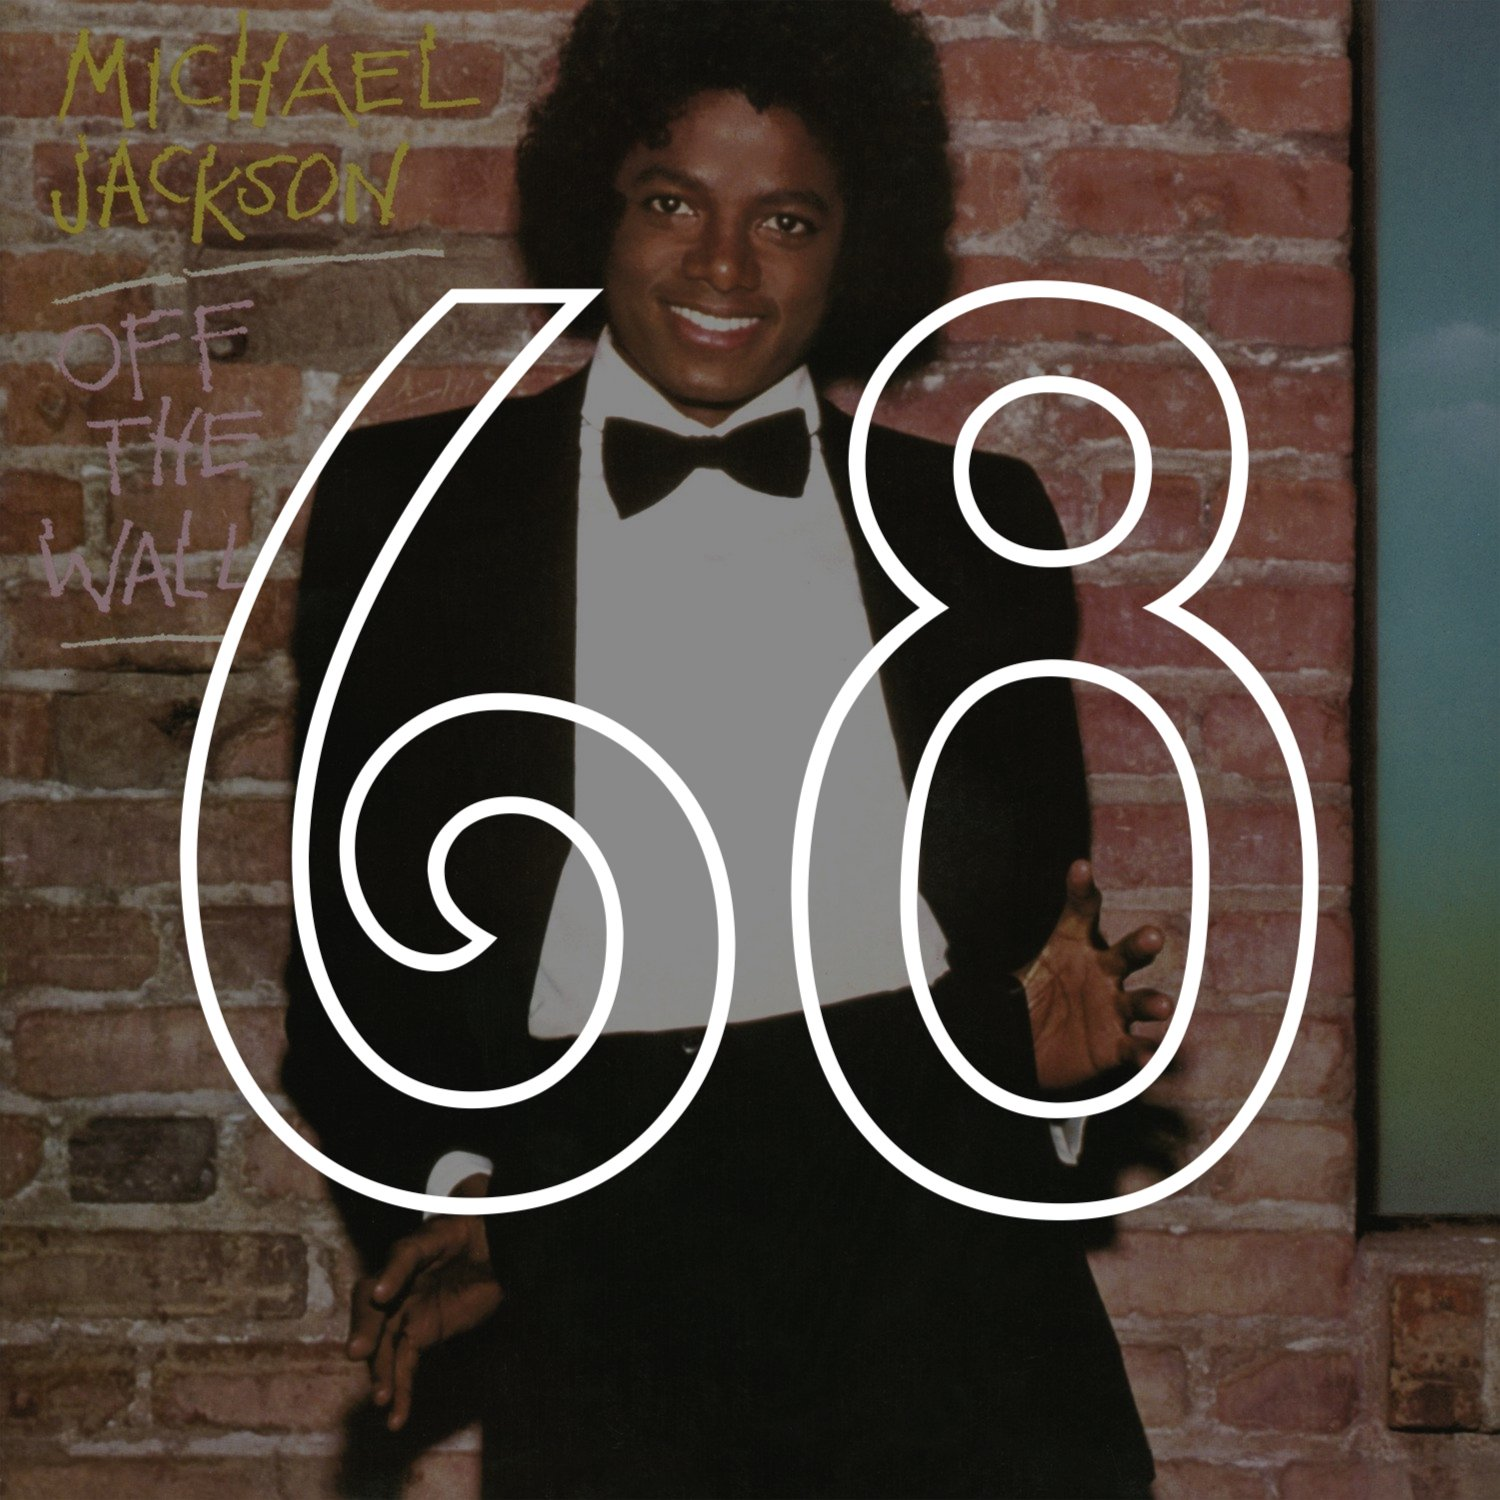 68 Off the Wall.jpg